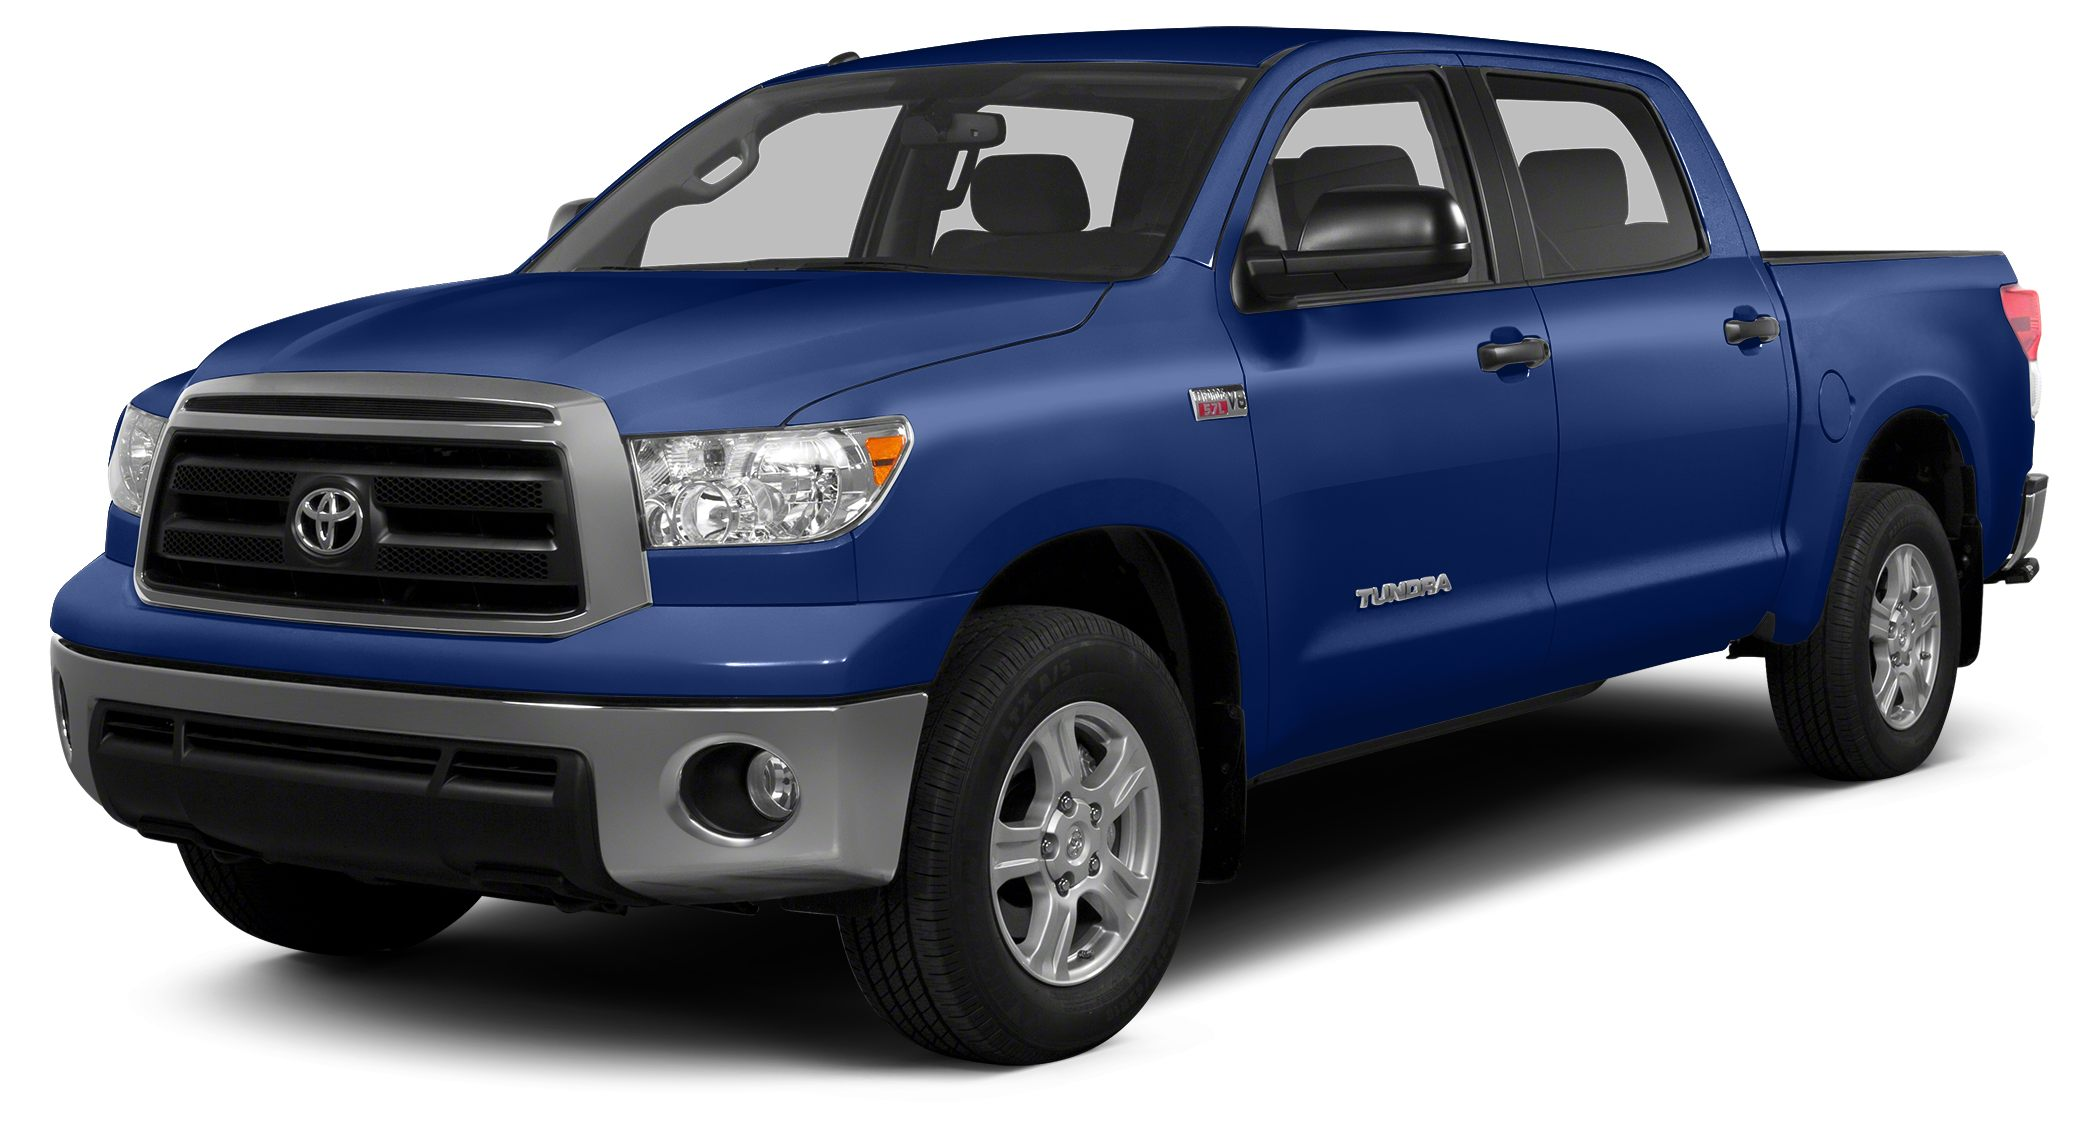 2013 Toyota Tundra Grade CARFAX 1-Owner Tundra trim Trailer Hitch BEDLINER WO DECK RAIL SYSTEM